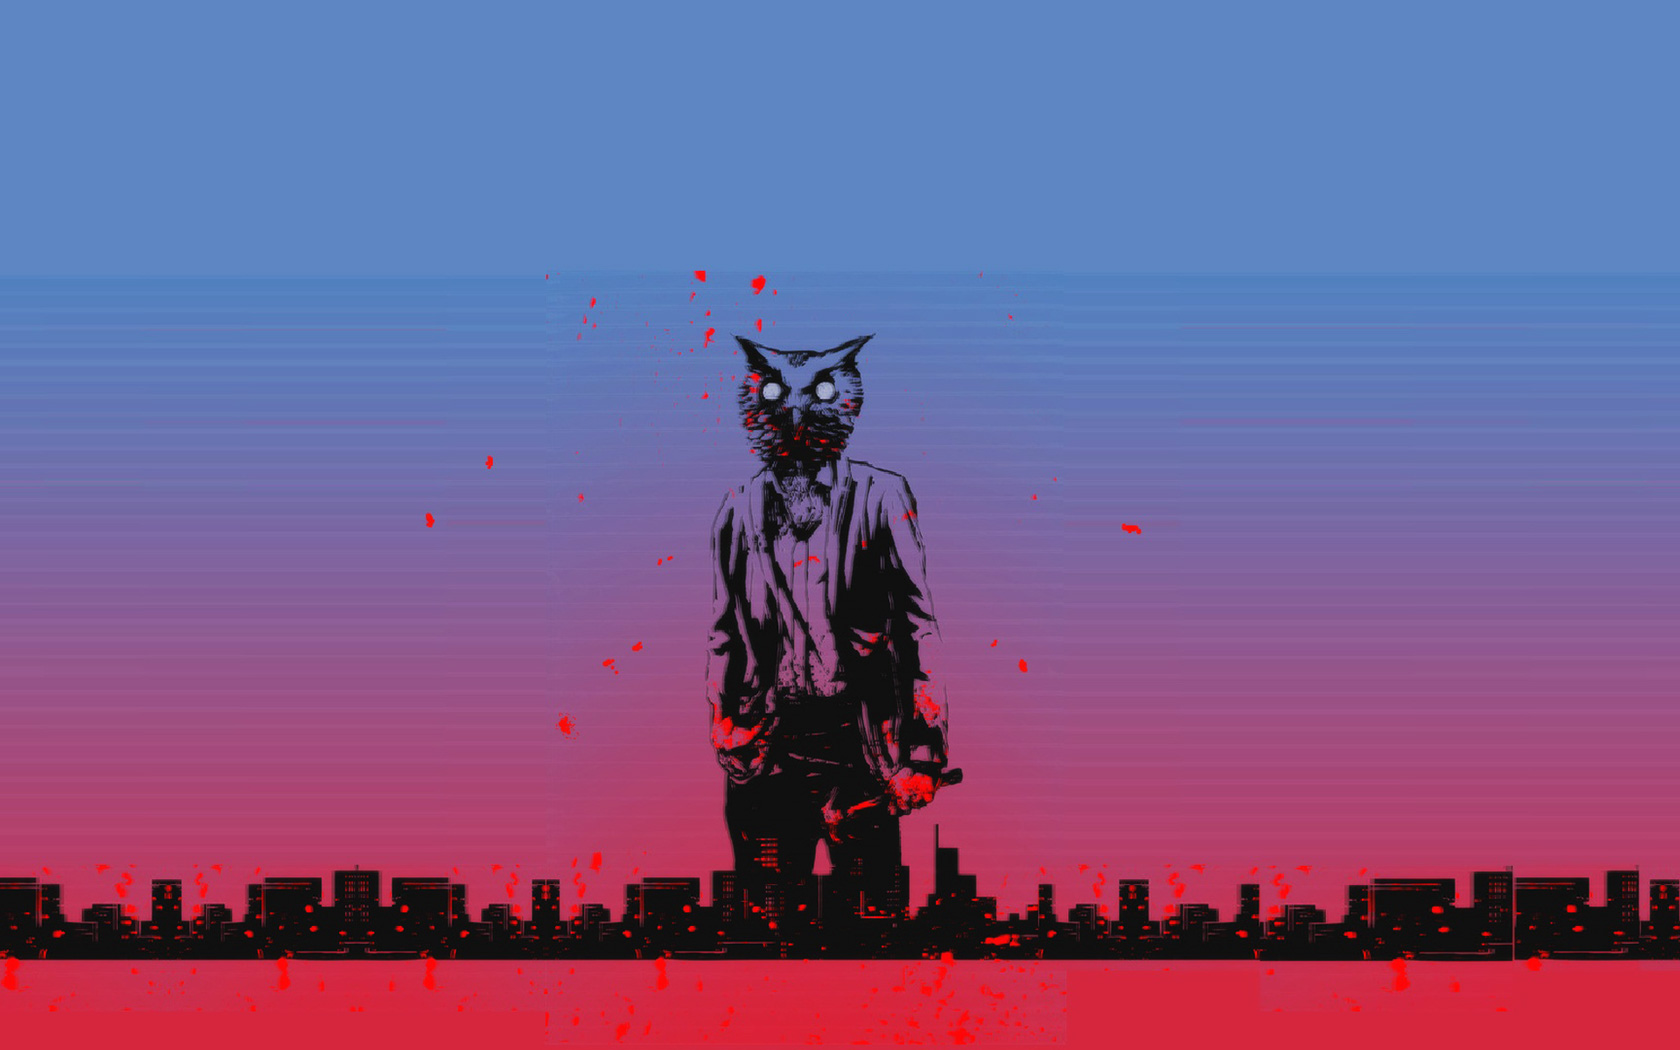 Free Hotline Miami Wallpaper in 1680x1050